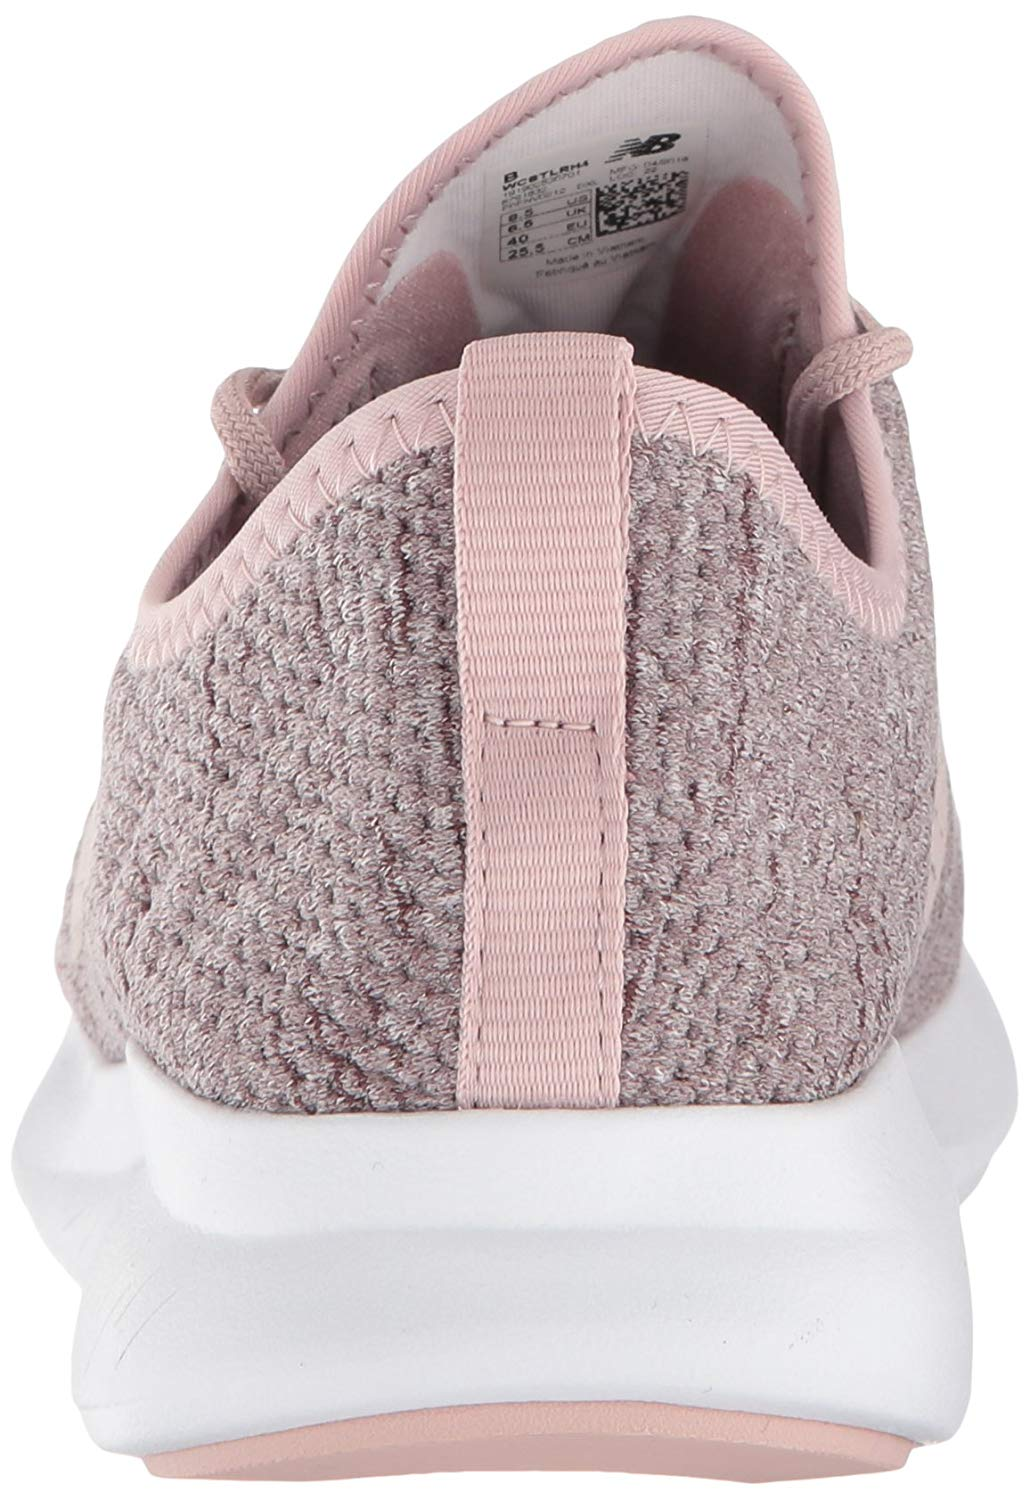 New-Balance-Womens-wcstlrb4-Coast-V4-Low-Top-Lace-Up-Running-Sneaker thumbnail 14